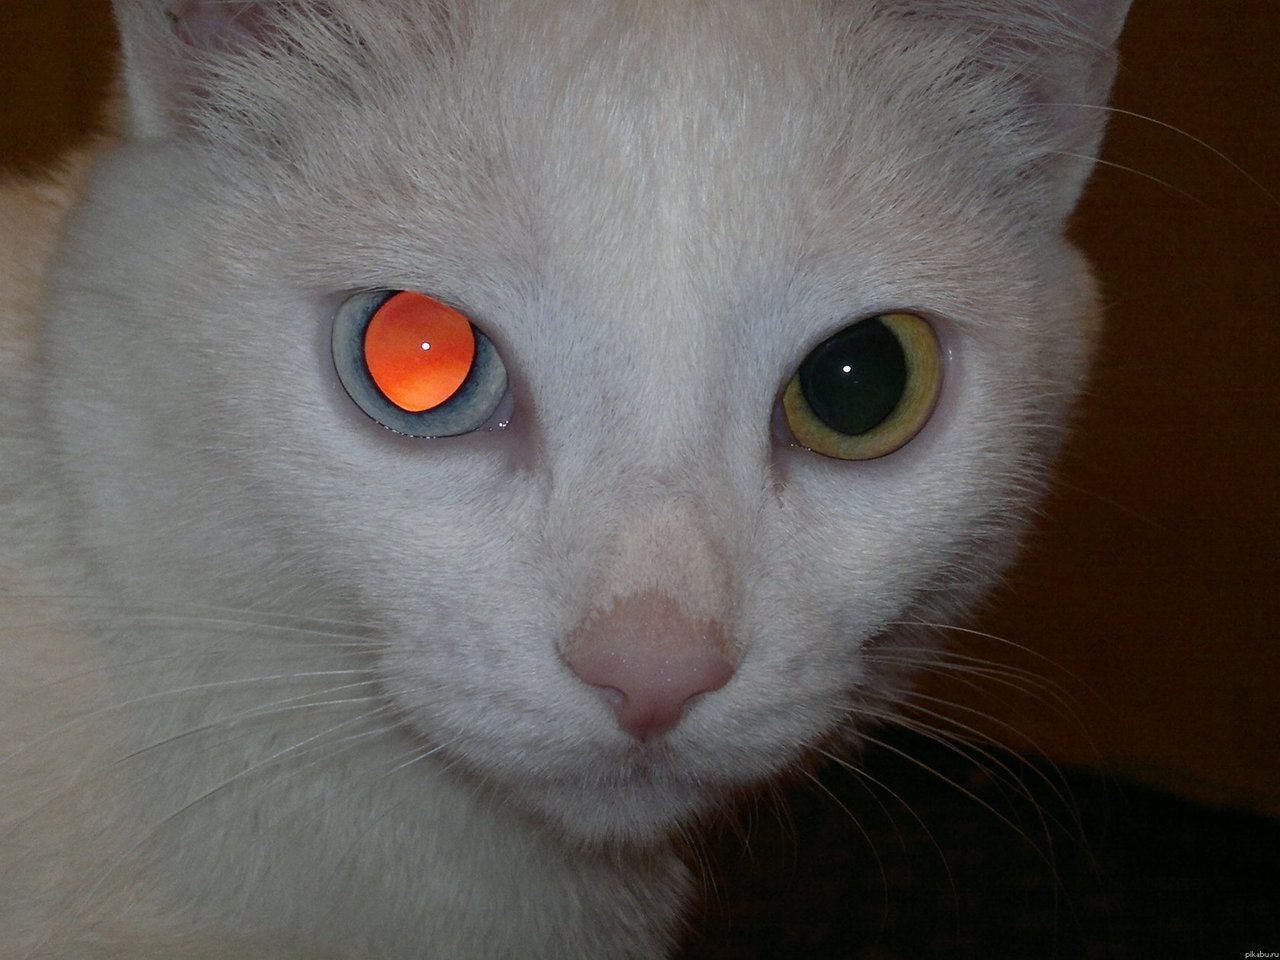 Pin by Au on animals in 2020 (With images) Cat aesthetic